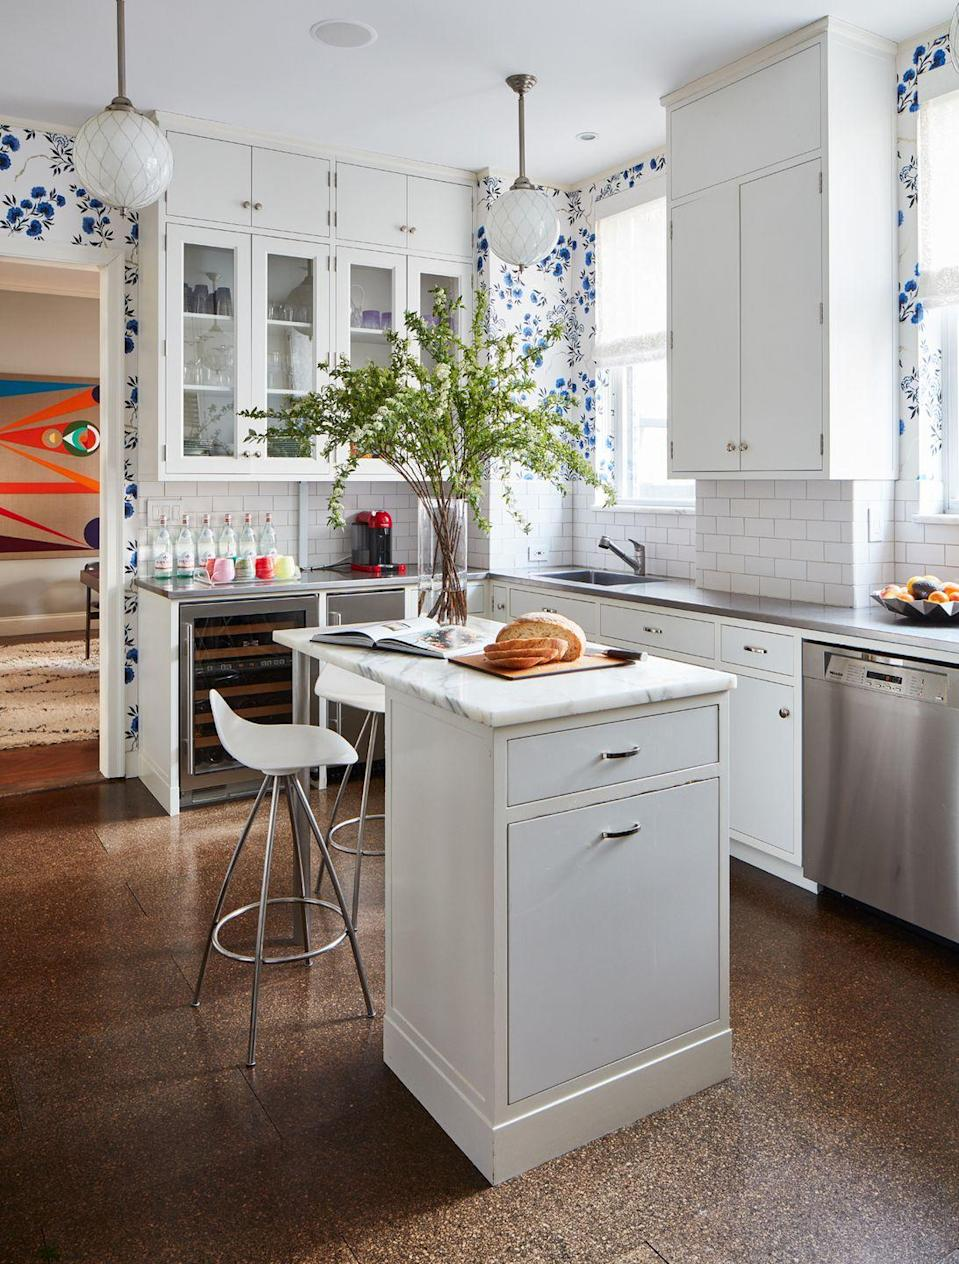 """<p>In recent years, an open kitchen-slash-dining-slash-living-slash-everything-else room has become the norm. But several designers told us that they're ready for the simple kitchen-as-kitchen (like in this <a href=""""https://www.housebeautiful.com/design-inspiration/house-tours/a27359529/fawn-galli-new-york-apartment/"""" rel=""""nofollow noopener"""" target=""""_blank"""" data-ylk=""""slk:Manhattan apartment"""" class=""""link rapid-noclick-resp"""">Manhattan apartment</a> designed by Fawn Galli) to make a comeback. """"I've been noticing more and more that clients don't want their kitchens in their living rooms,"""" says <a href=""""https://www.tinaramchandani.com/"""" rel=""""nofollow noopener"""" target=""""_blank"""" data-ylk=""""slk:Tina Ramchandani"""" class=""""link rapid-noclick-resp"""">Tina Ramchandani</a>. """"The separation of rooms gives a sense of having more space."""" Adds Pickart, """"The great room concept will be making a graceful exit in this next decade. That's not to say we won't have non-dining seating, I just believe we are headed back toward a time where our rooms are designed to serve their original purpose, kitchens especially!""""</p>"""